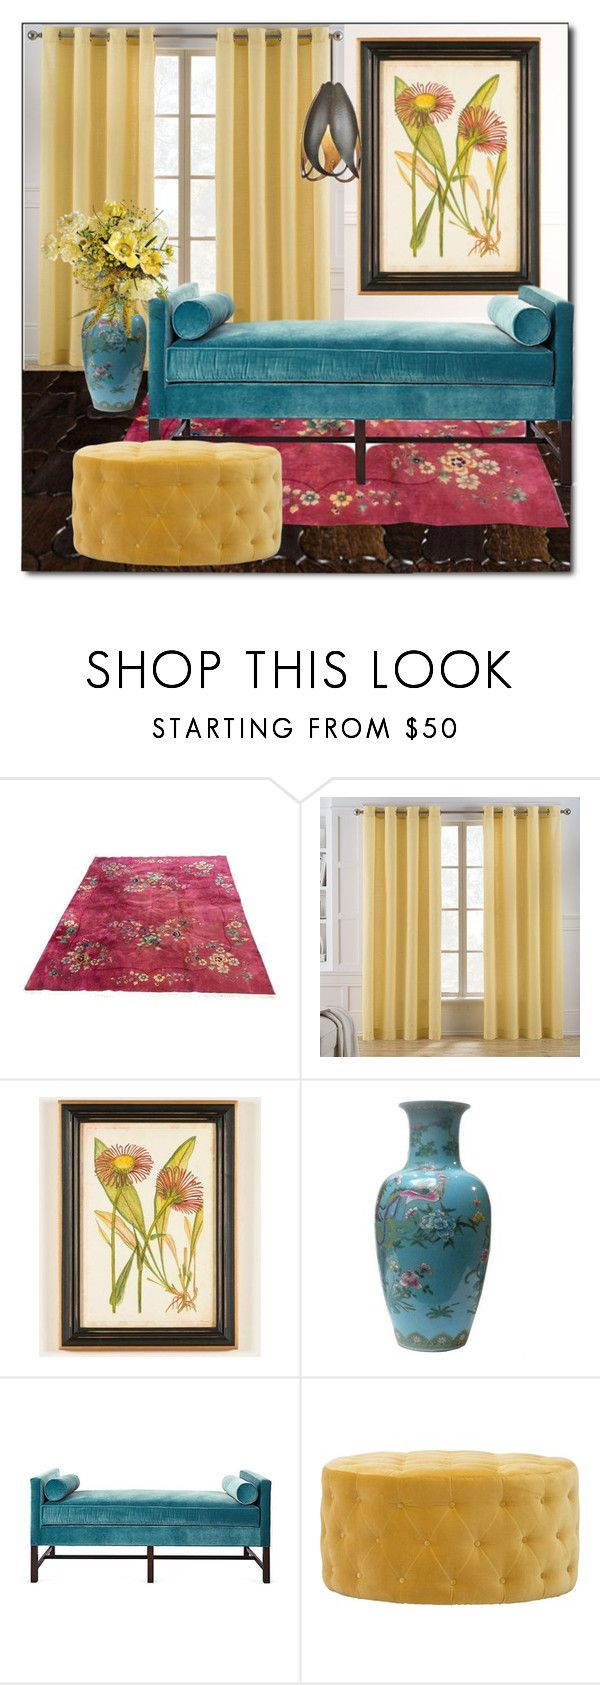 """BRIGHTS & BOLD"" by littlefeather1 ❤ liked on Polyvore featuring interior, interiors, interior design, home, home decor, interior decorating, Keeco, Country Curtains, Kristin Drohan Collection and Hubbardton Forge"